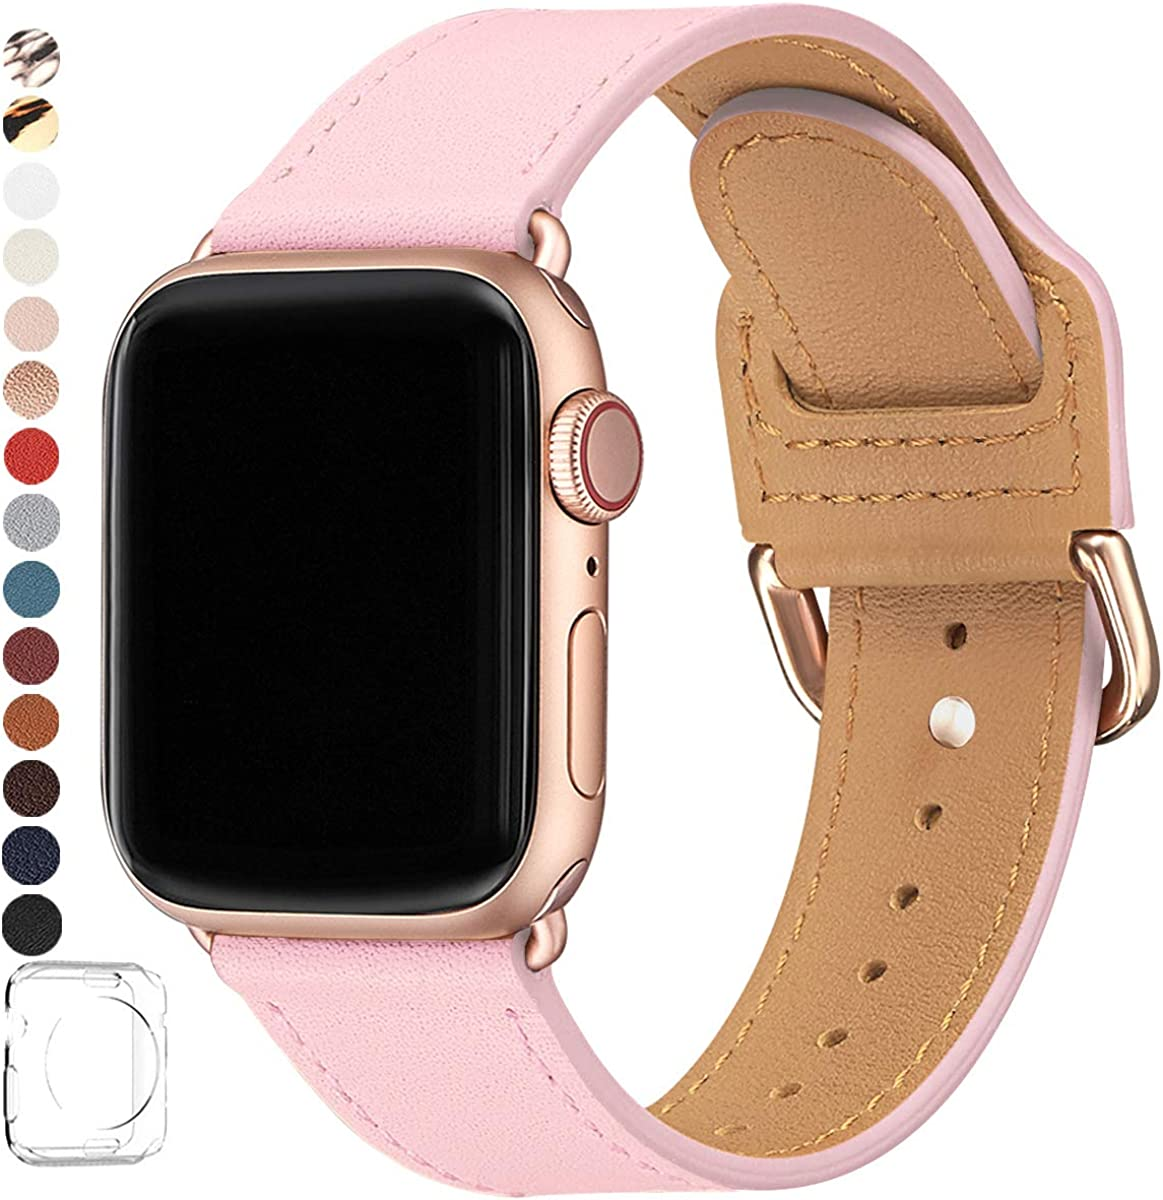 POWER PRIMACY Bands Compatible with Apple Watch Band 38mm 40mm 42mm 44mm, Top Grain Leather Smart Watch Strap Compatible for Men Women iWatch Series 5 4 3 2 1(Pink/Rosegold,42mm/44mm)